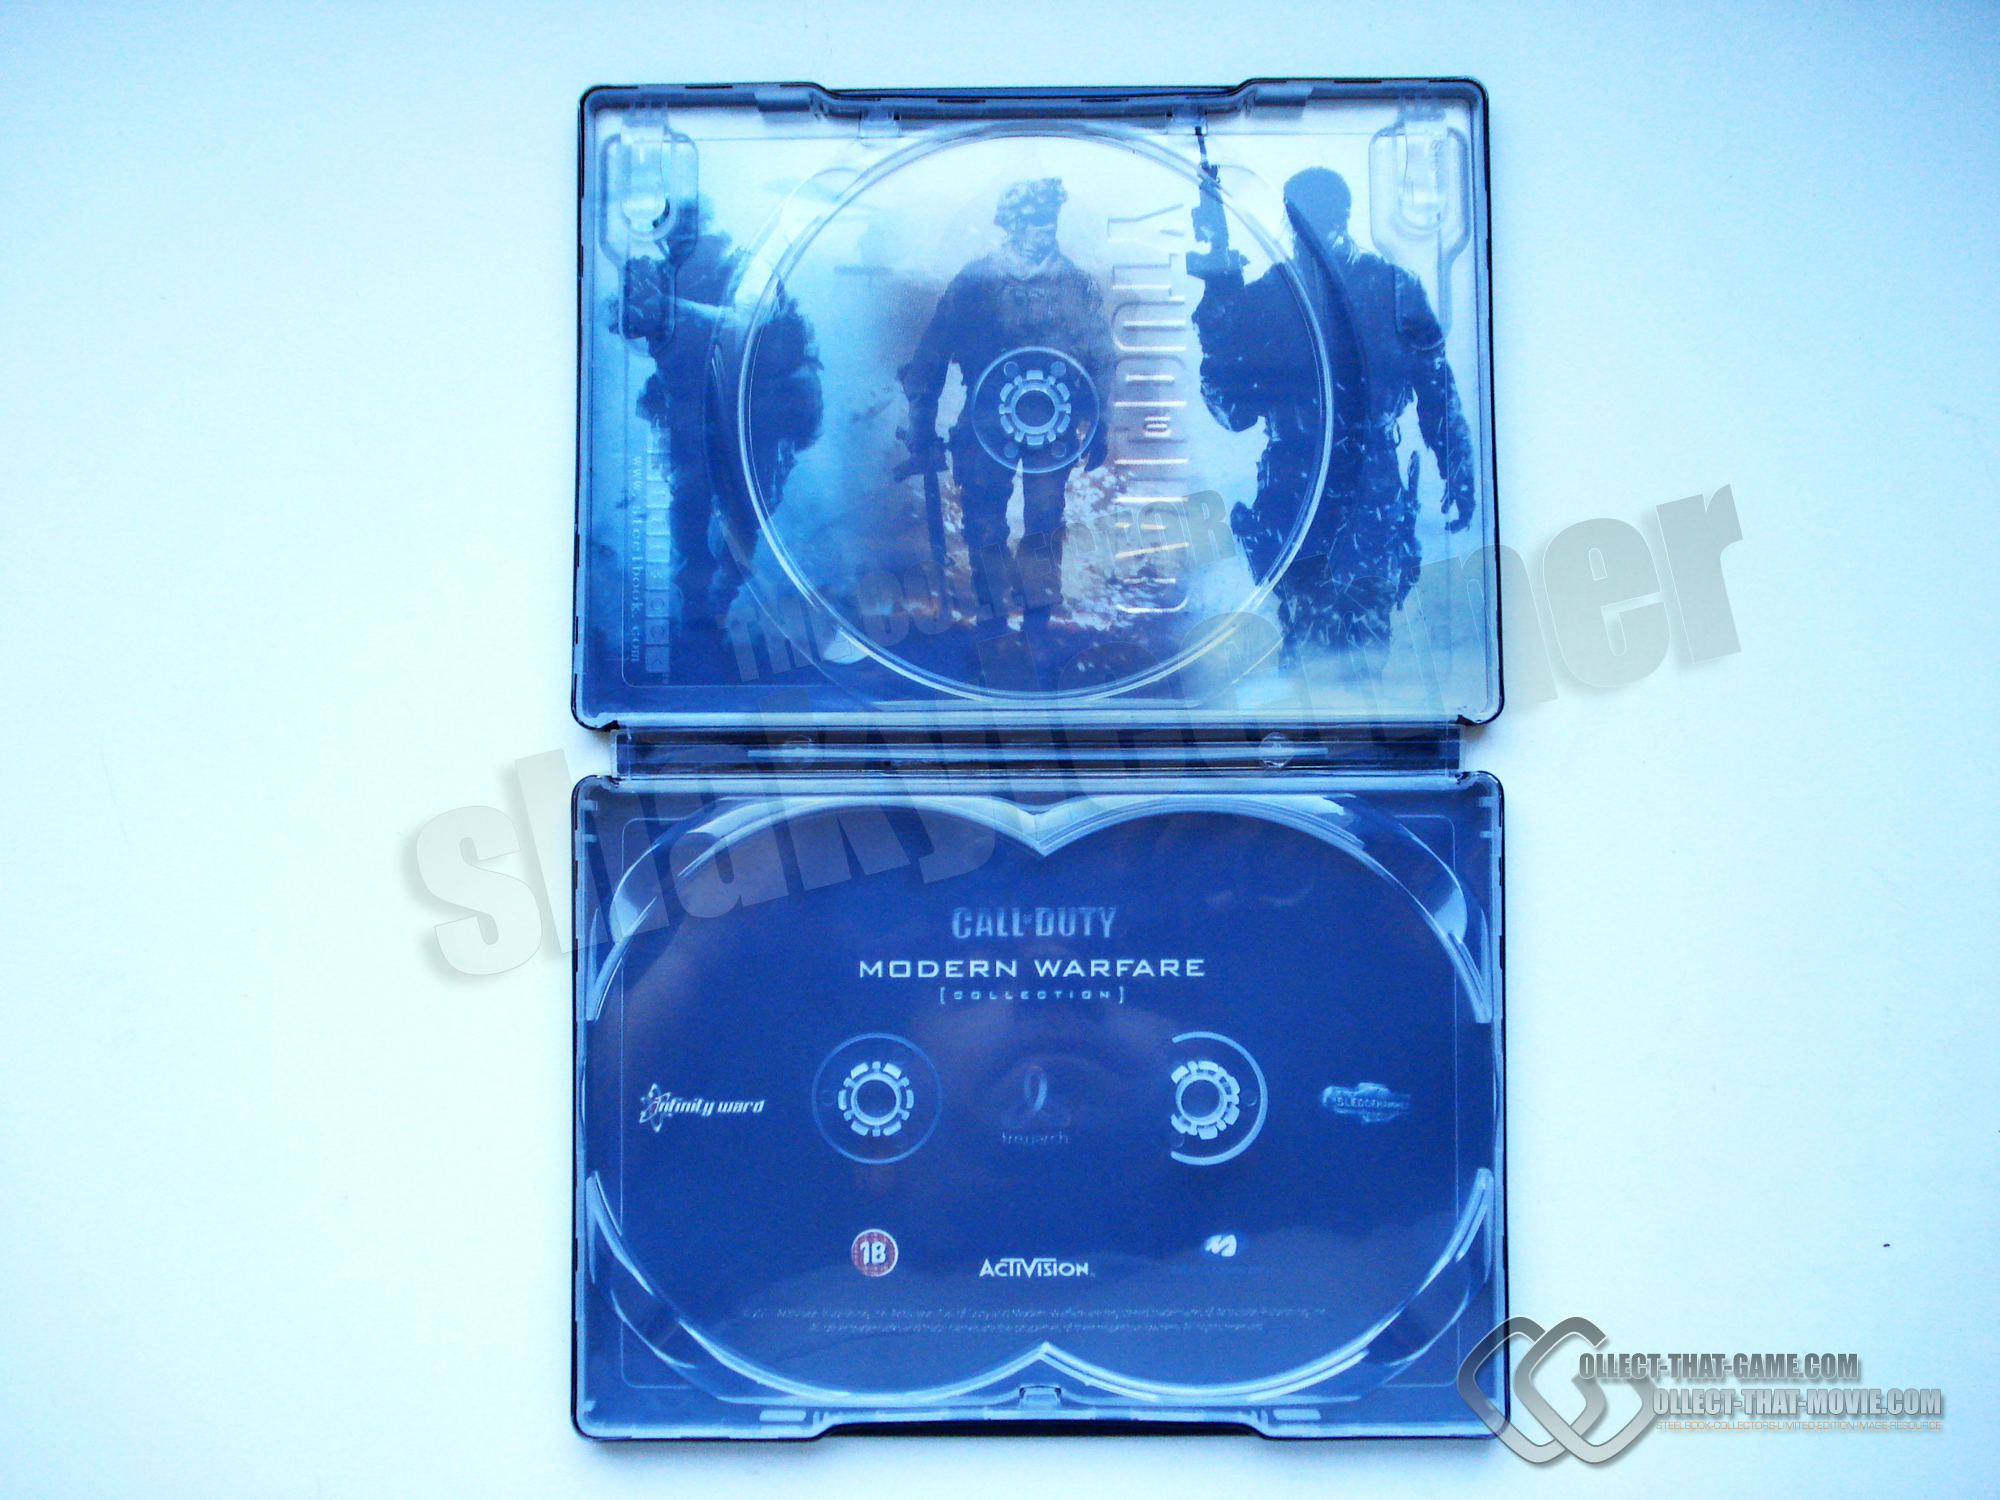 ps3_call_of_duty_modern_warfare_collection_steelbook_full1